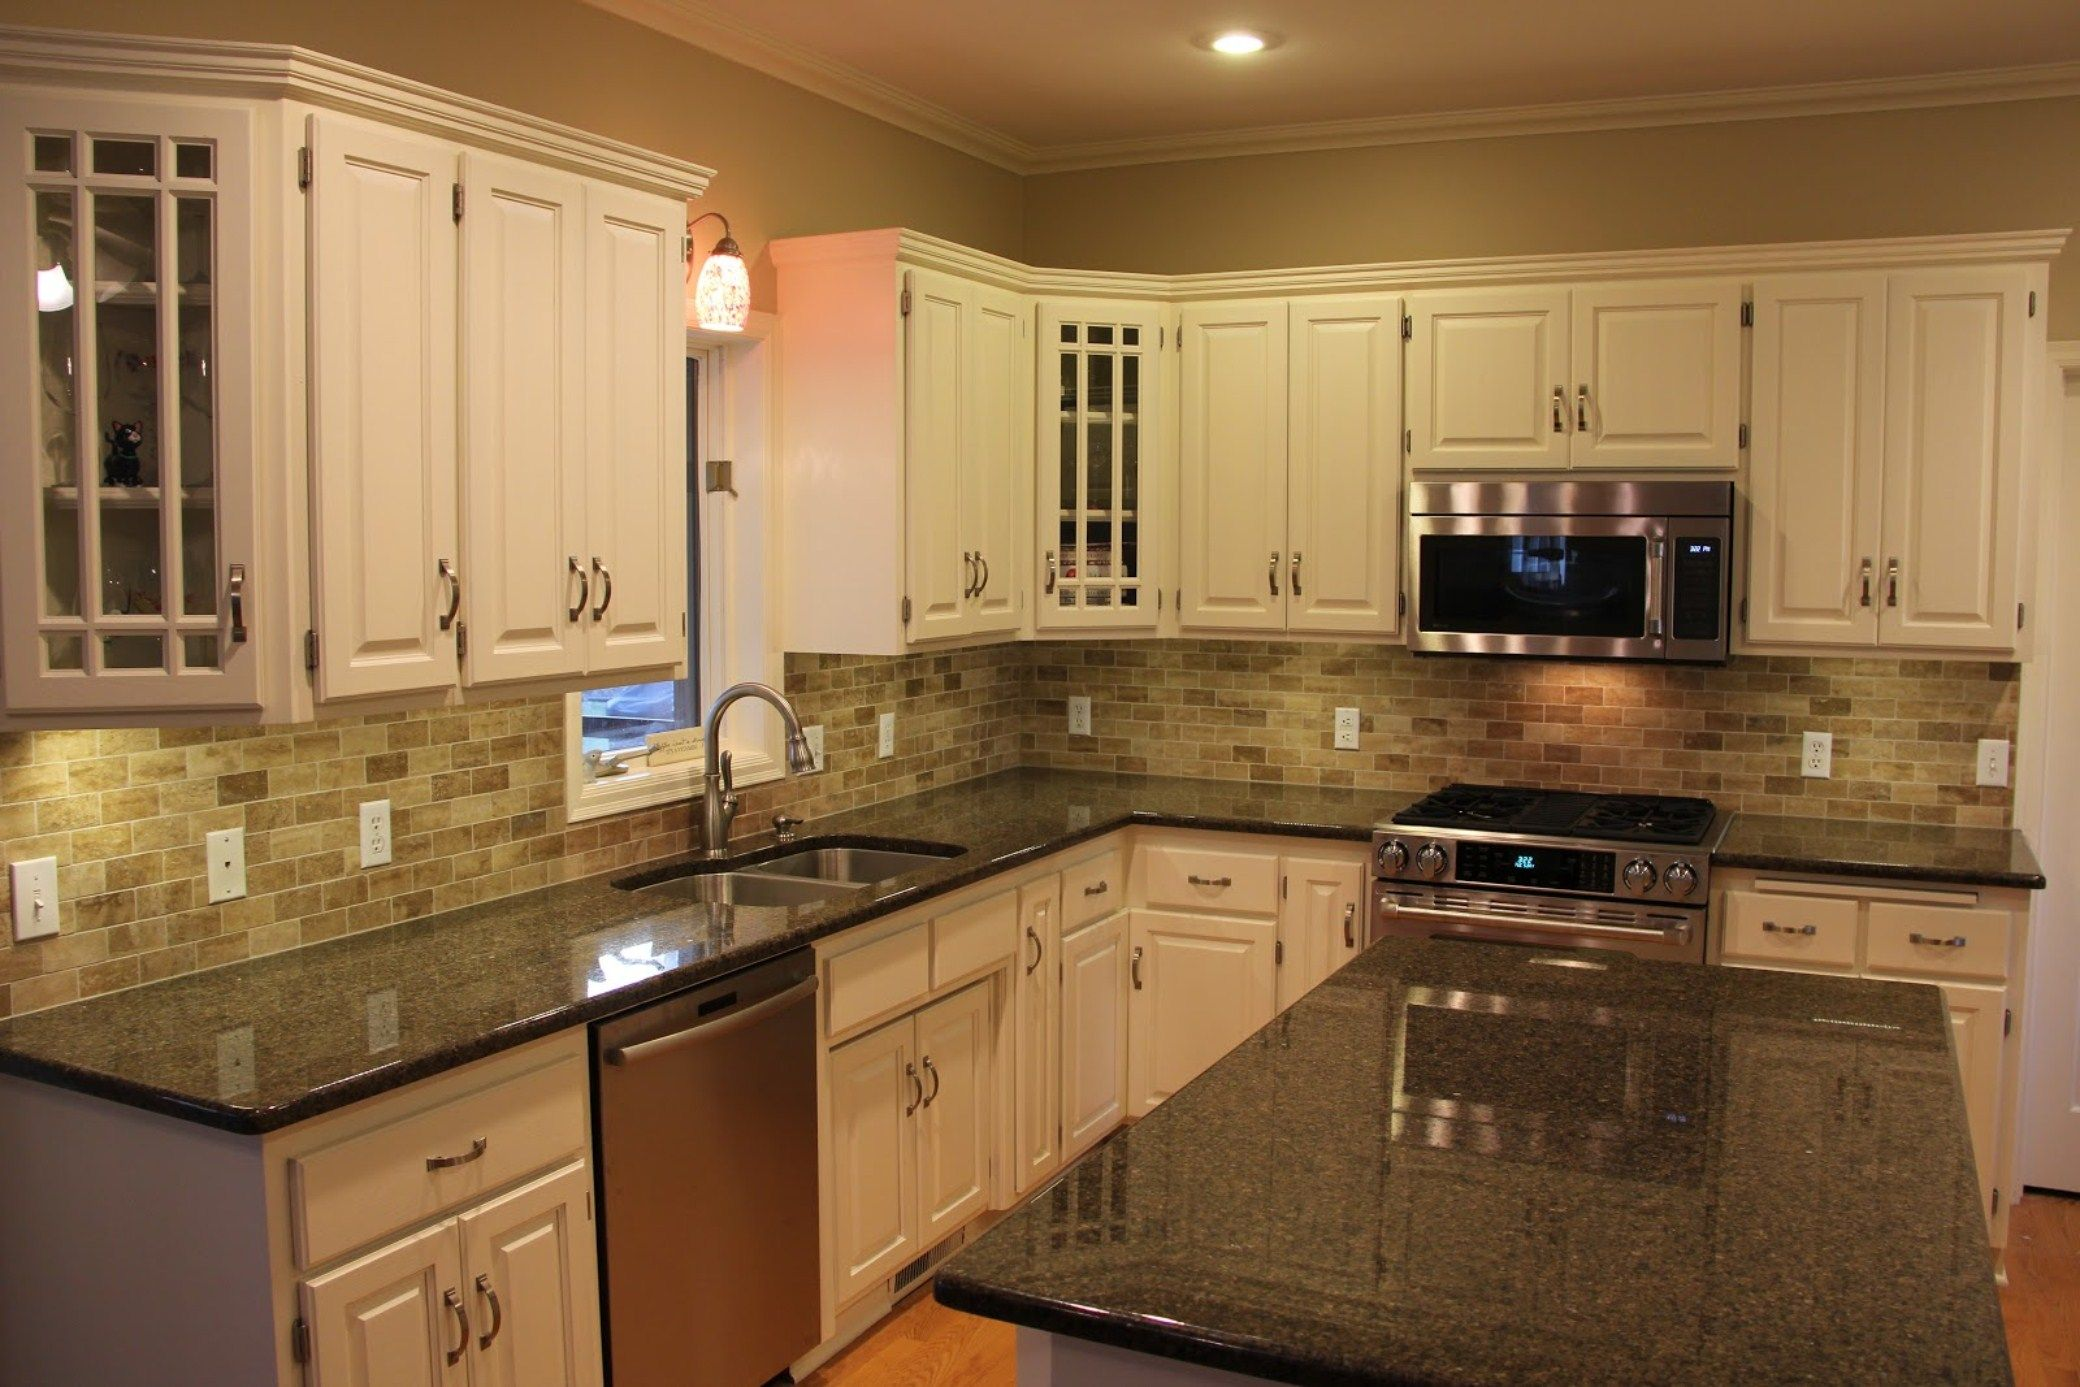 Inland Empire Marble And Granite Is So Good Because Of Its Durability And Beauty Granite Is